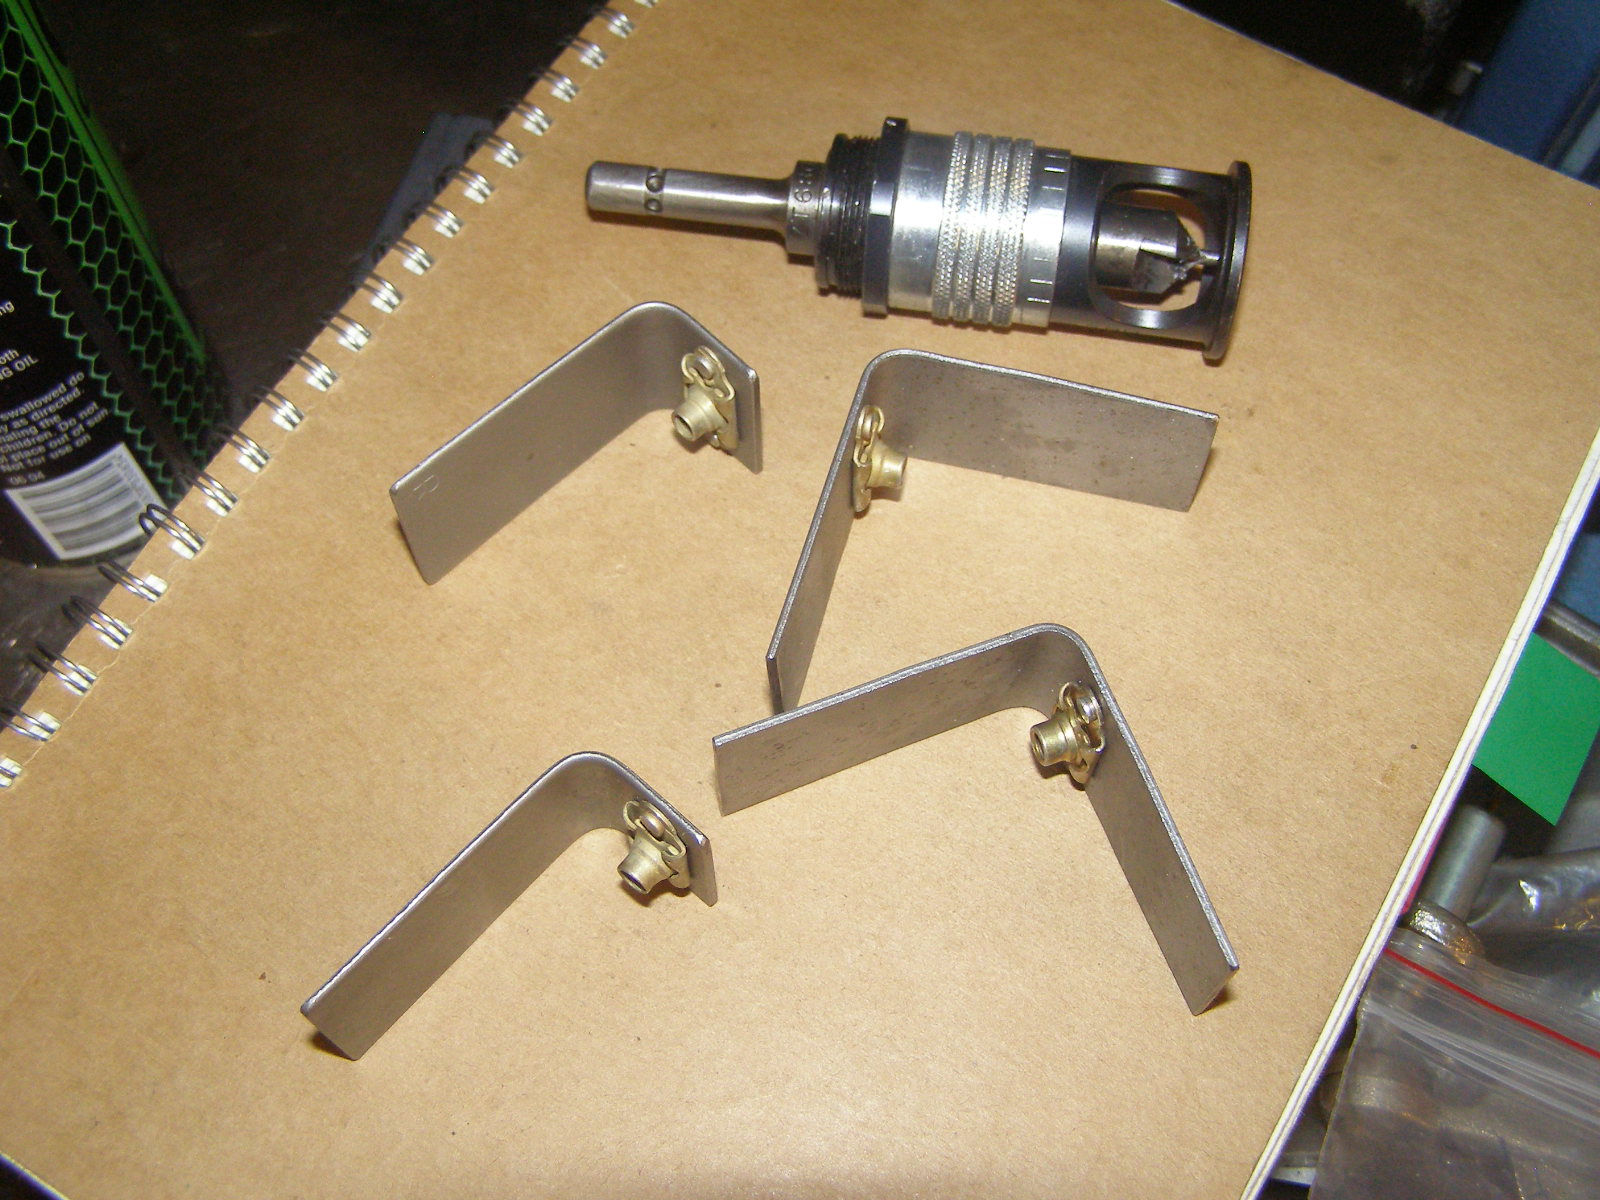 Windage tray attach brackets manufactured and fitted with floating and self-locking anchor nuts waiting to be welded to sump interior.  Microstop countersink tool in background used to countersink brackets to accept anchor nut attach rivets.